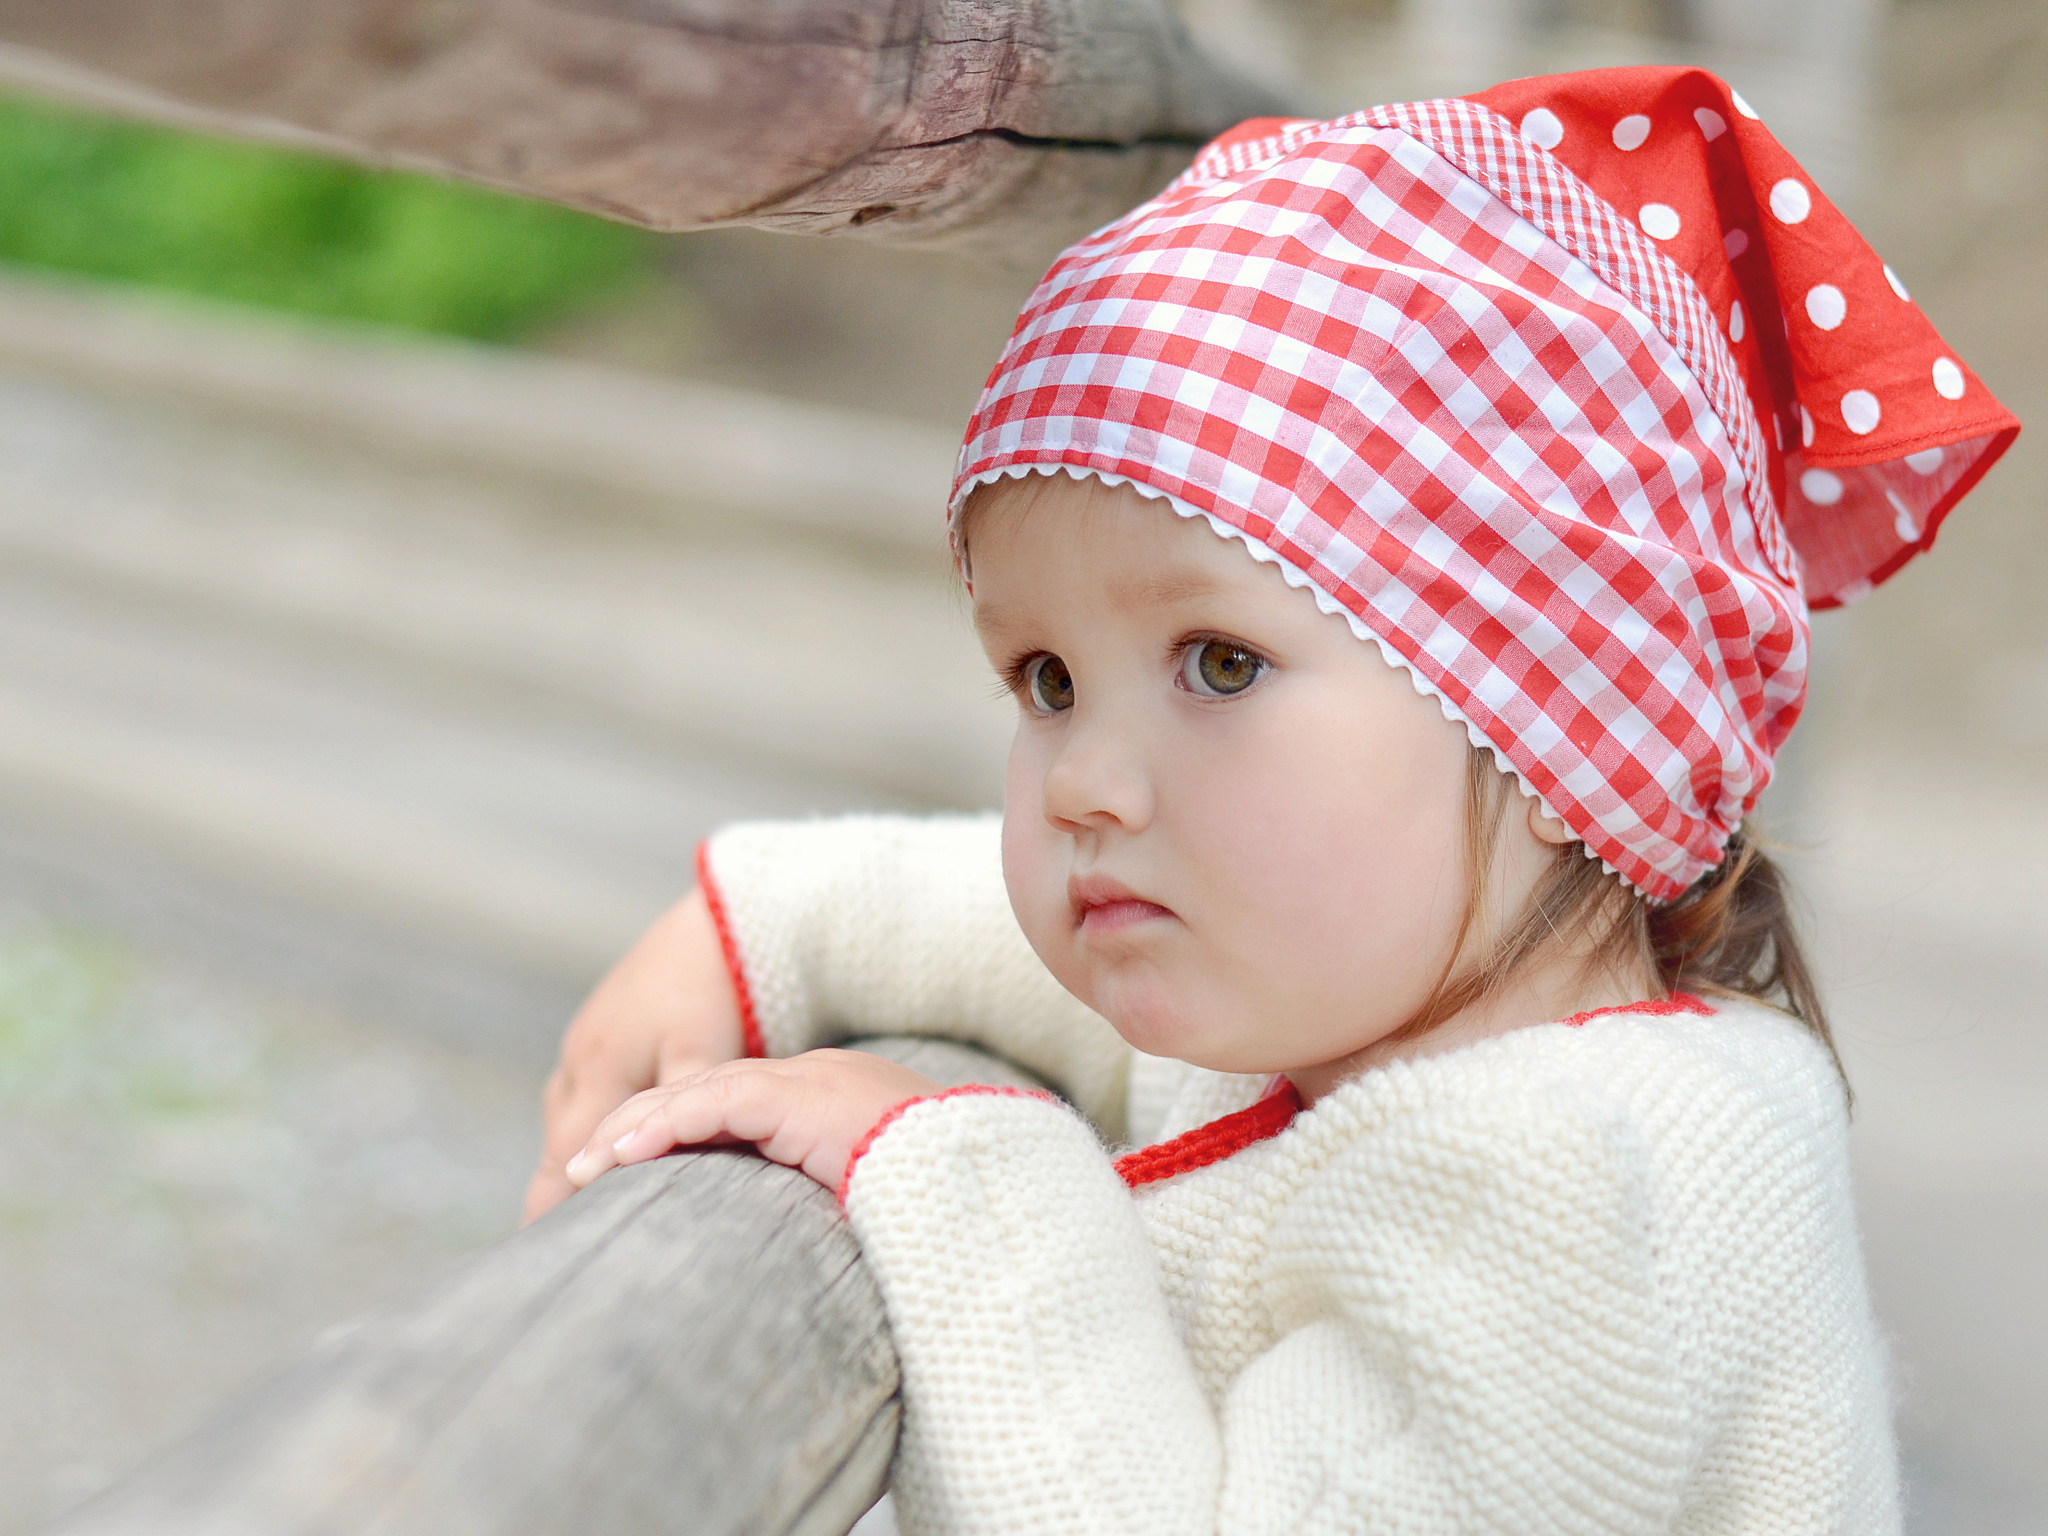 100 Beautiful Baby Photos To Brighten Up Your Day - pxleyes Cute and lovely baby photos